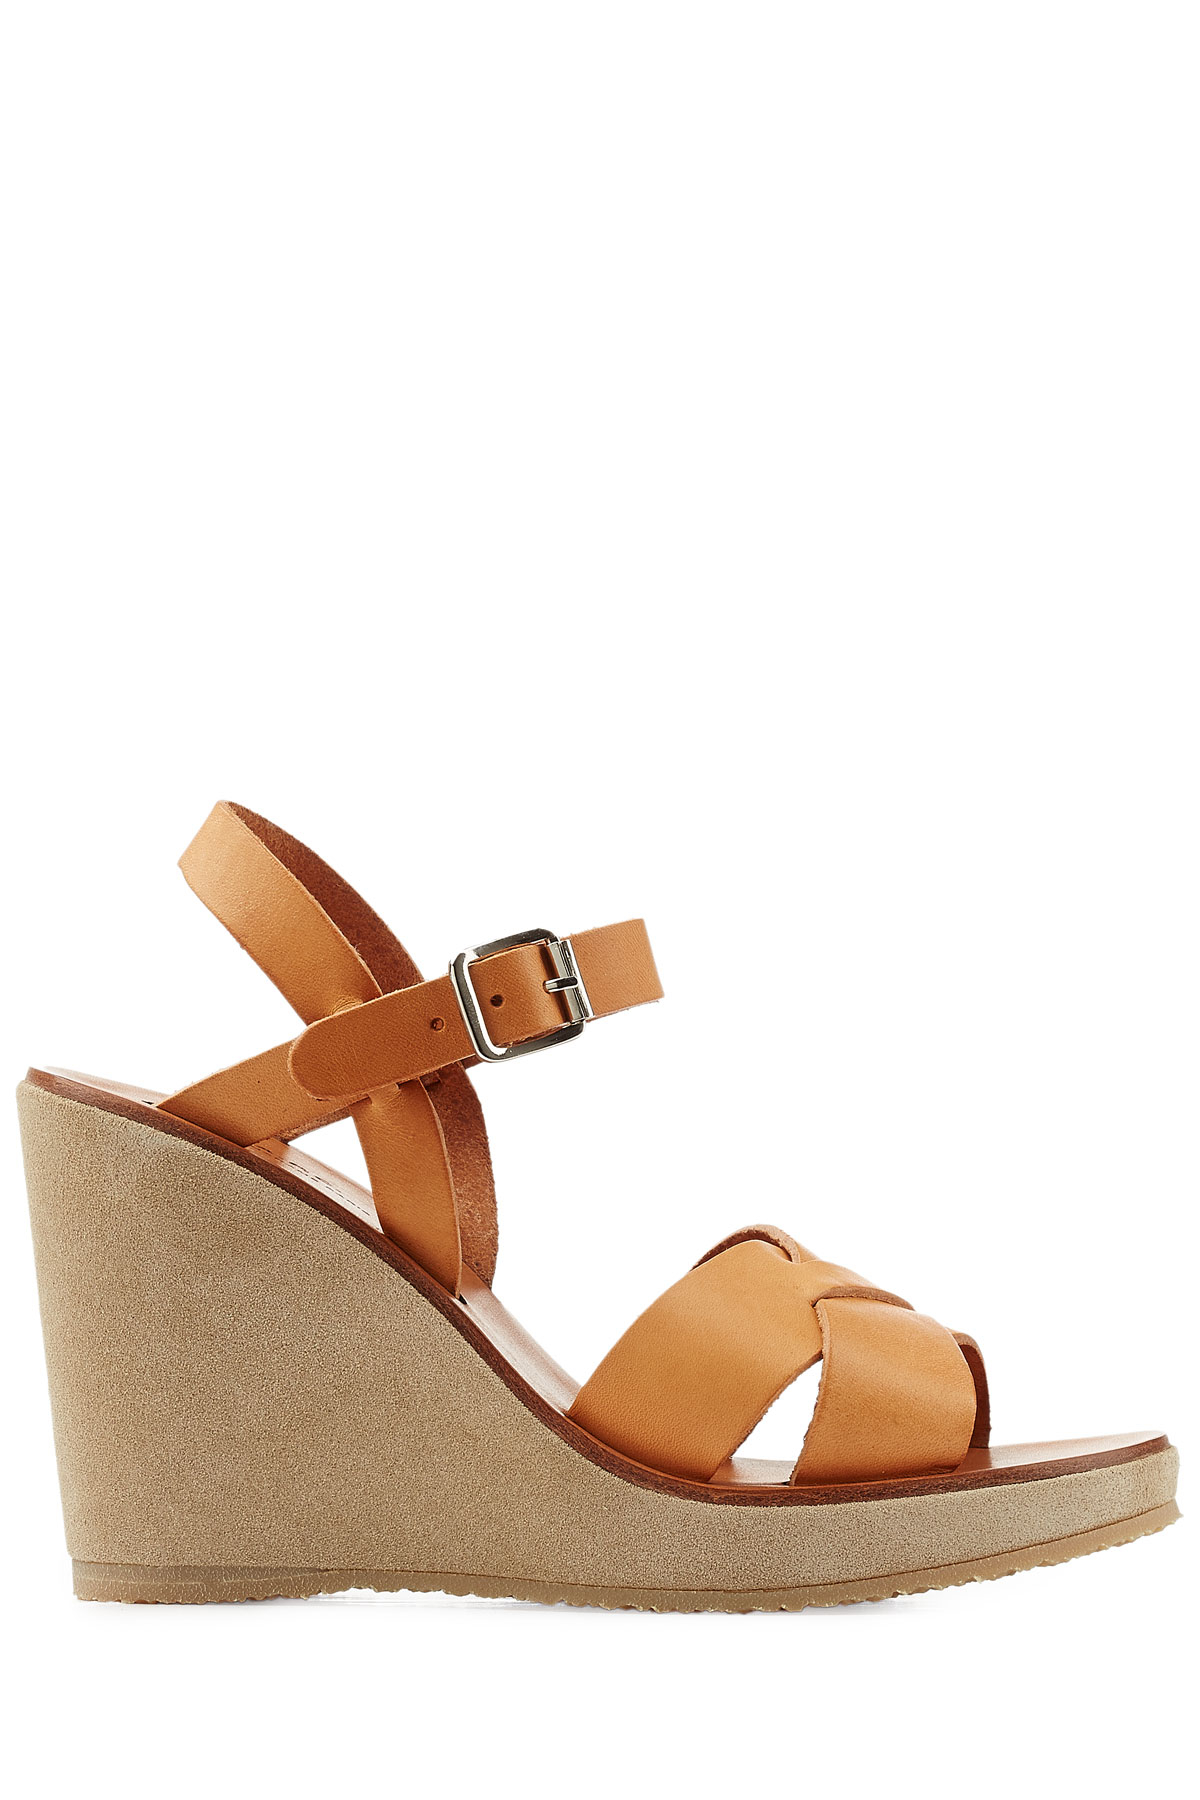 A.p.c. Leather Sandals With Suede Wedge